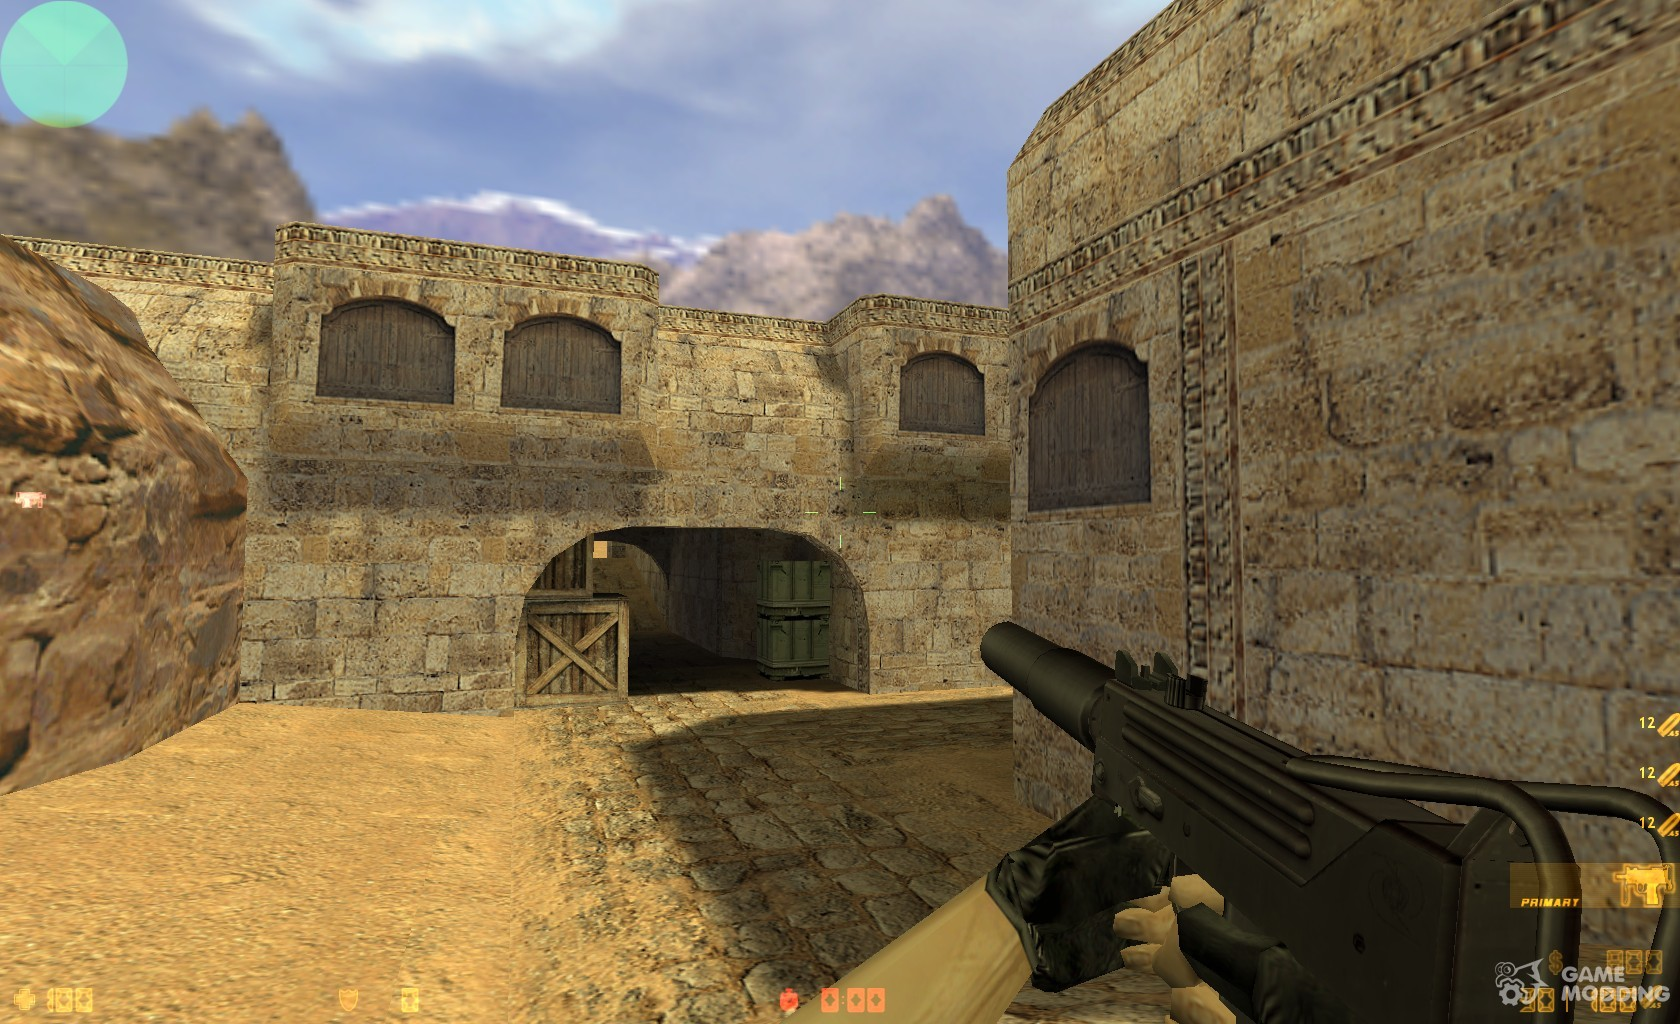 Bullet_Head's Mac10 (silenced) for Counter-Strike 1.6